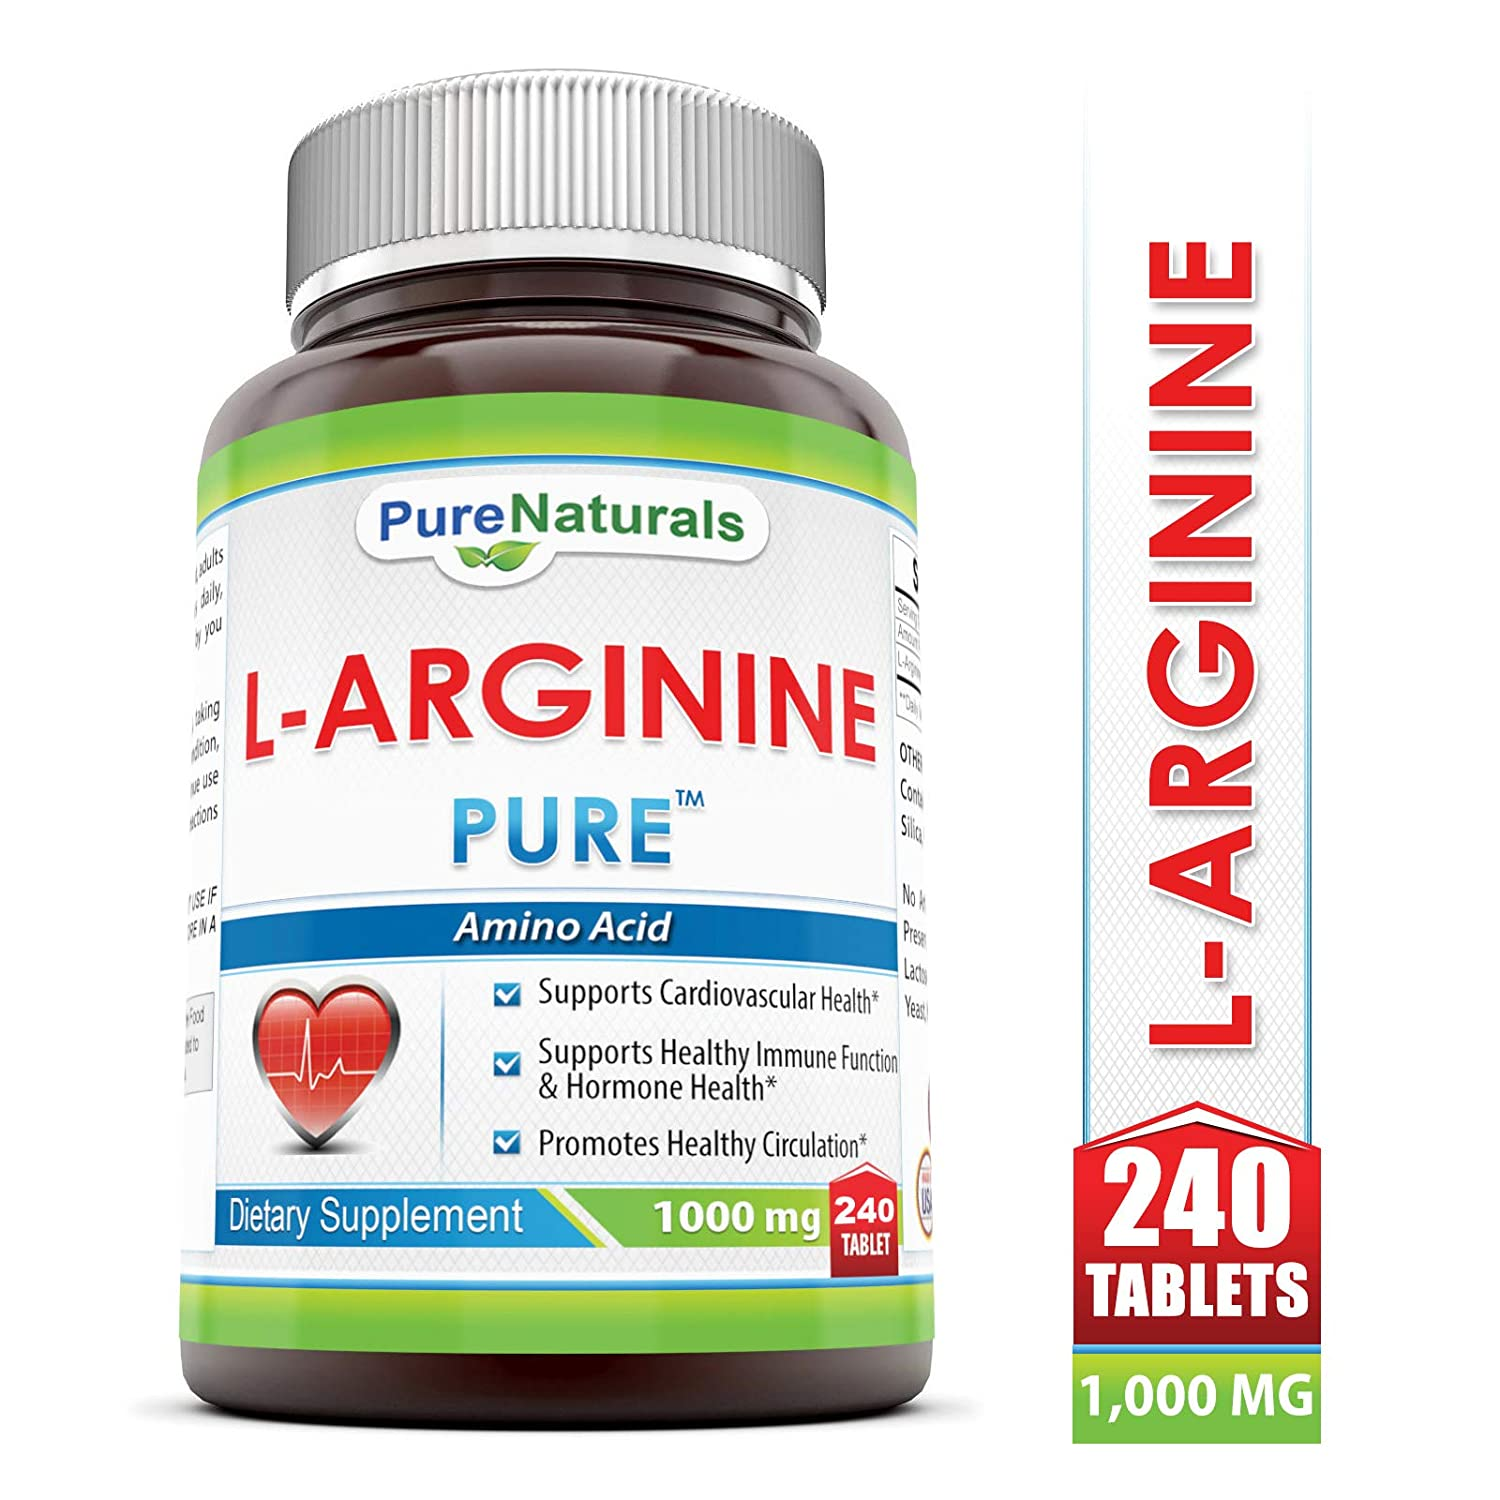 Pure Naturals L-Arginine 1000 Mg, 240 Tablets Supports Cardiovascular Health* Supports Healthy Immune Function Hormone Health* Promotes Healthy Circulation*